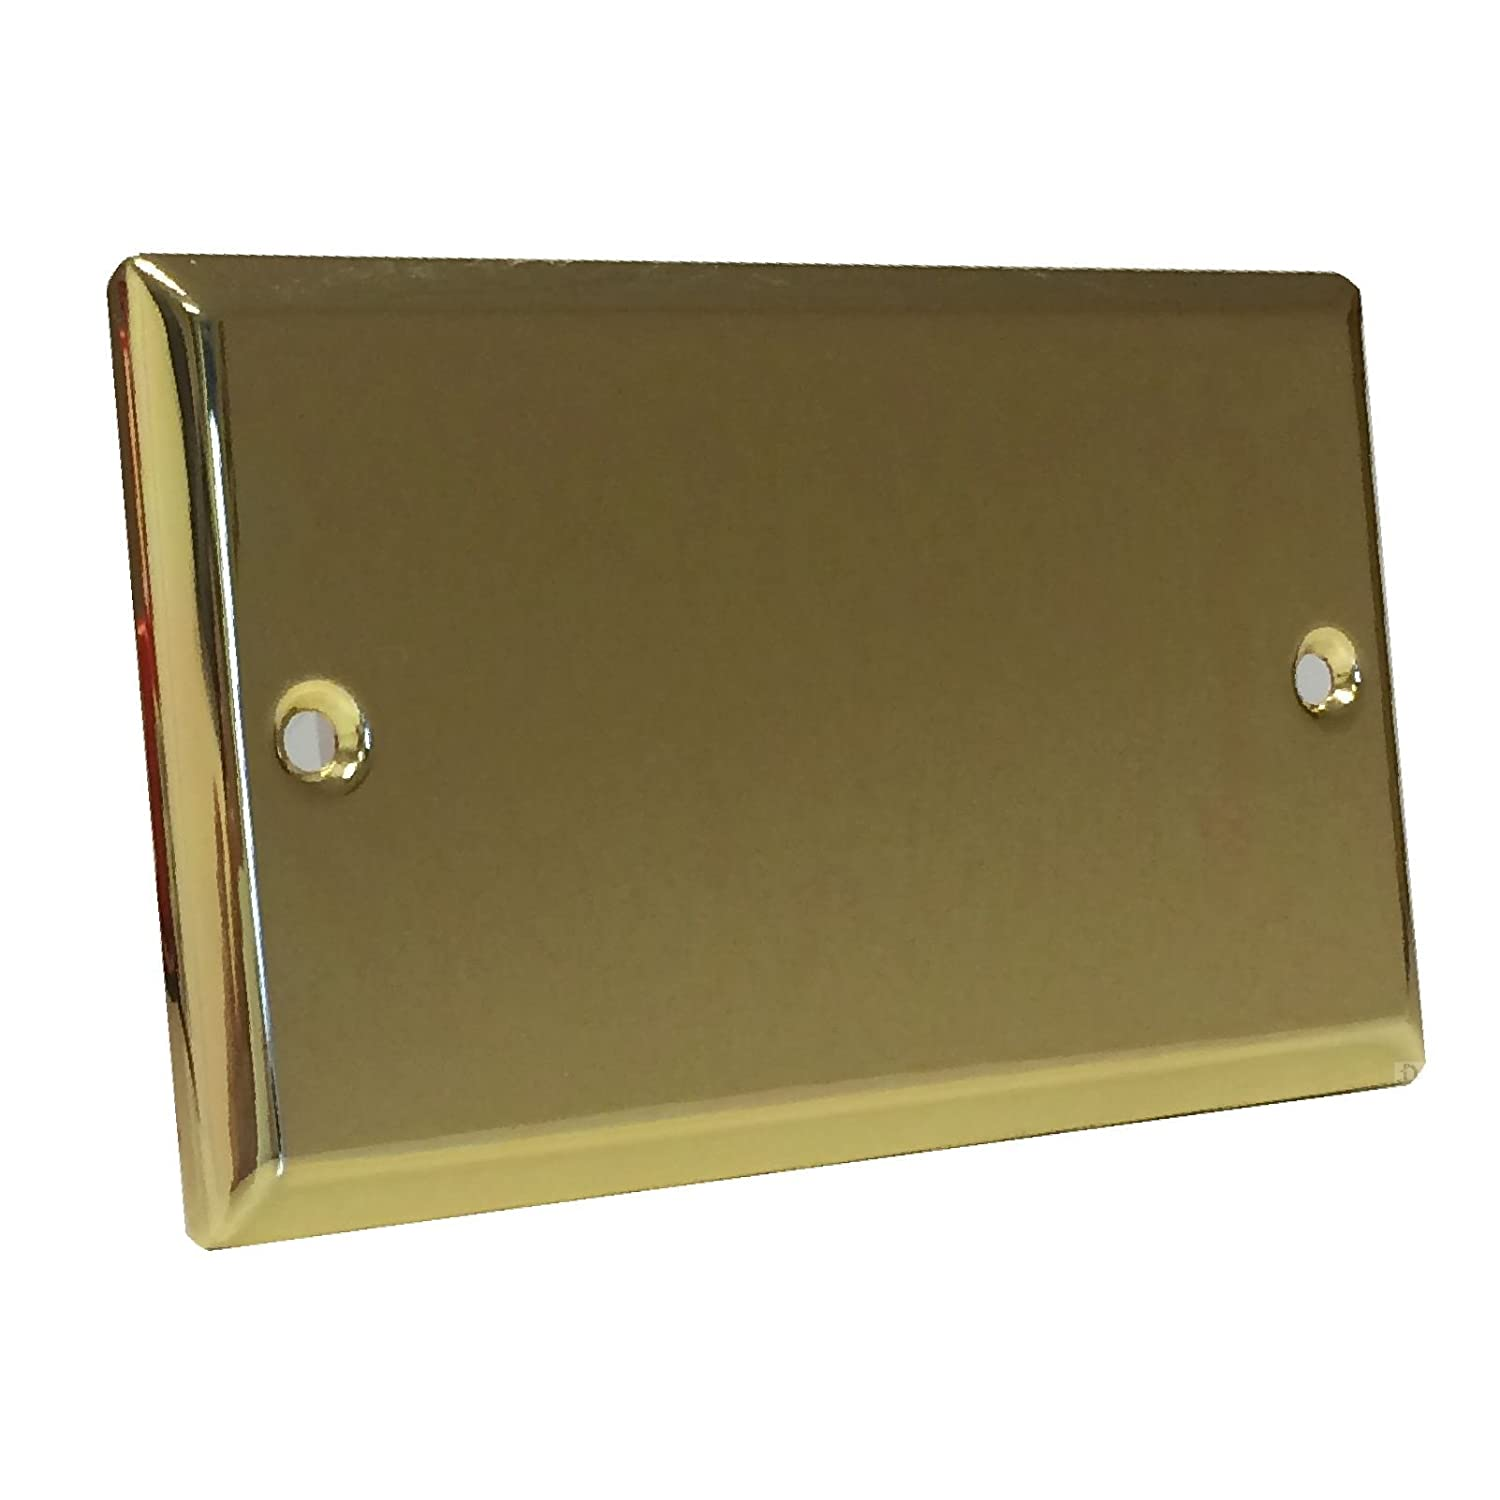 Double Blanking Plate Victoria Brass 2 Gang Blank Bright Brass Electrical Cover Red and Grey